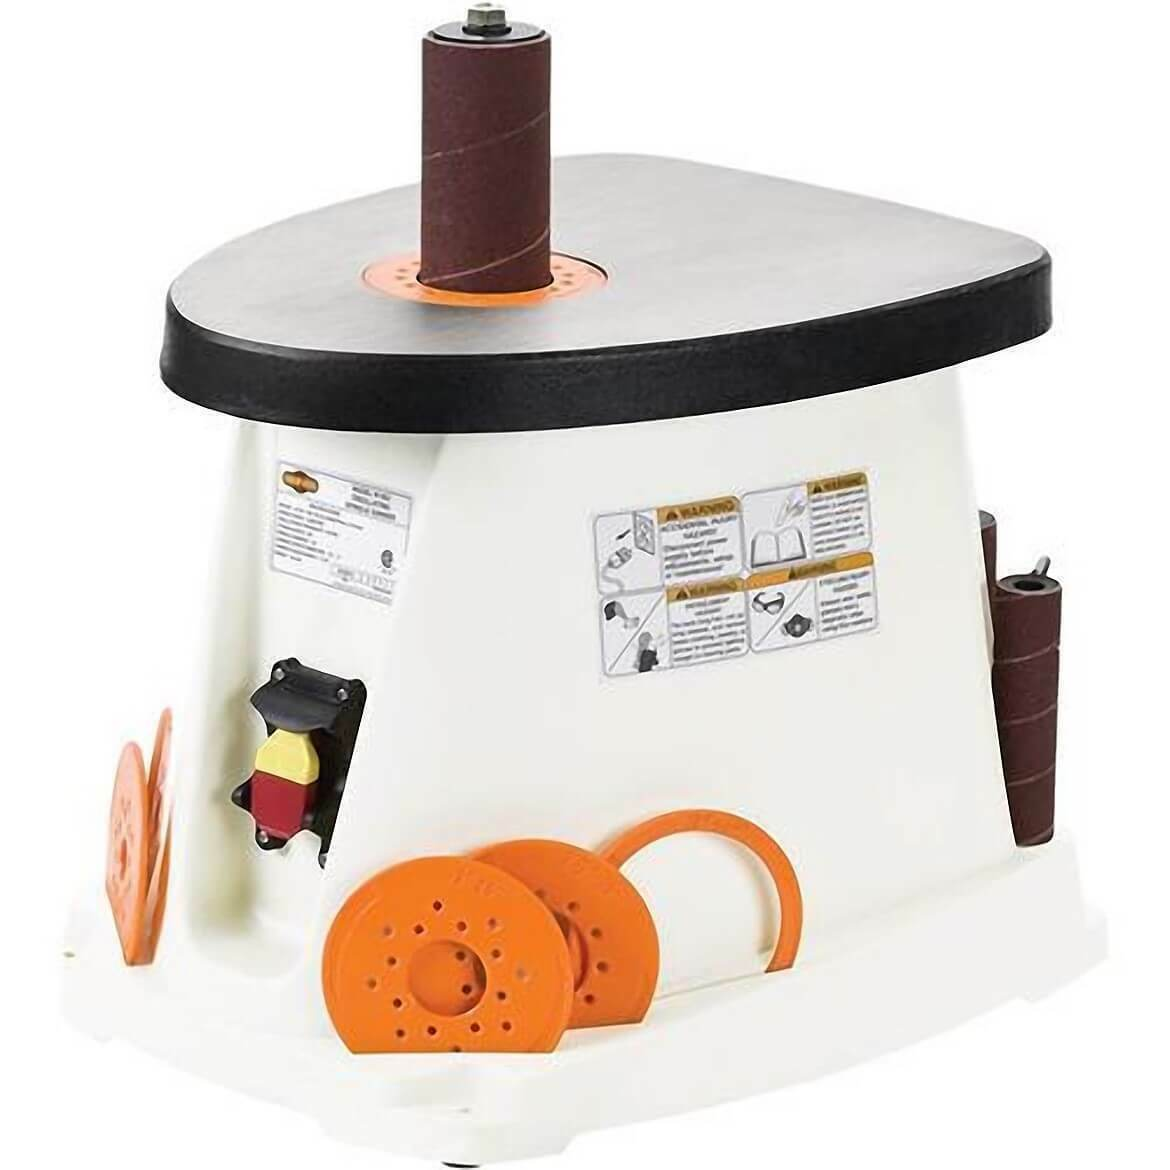 Shop Fox W1831 Oscillating Spindle Sander w/ 5 Rubber Sanding Drums & 6 Sleeves. Buy it now for 169.99